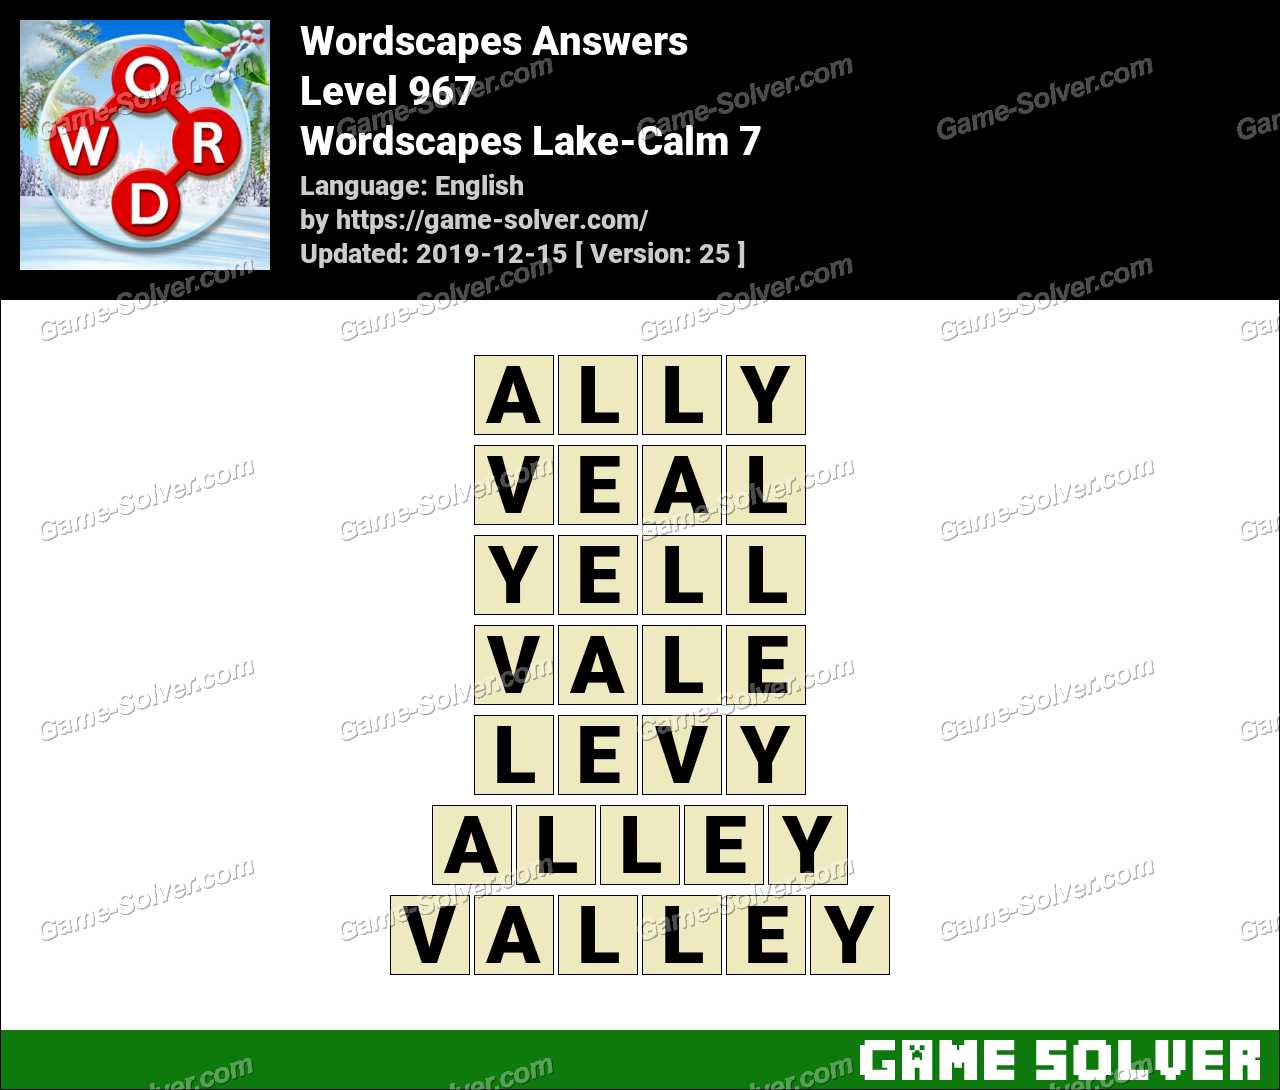 Wordscapes Lake-Calm 7 Answers